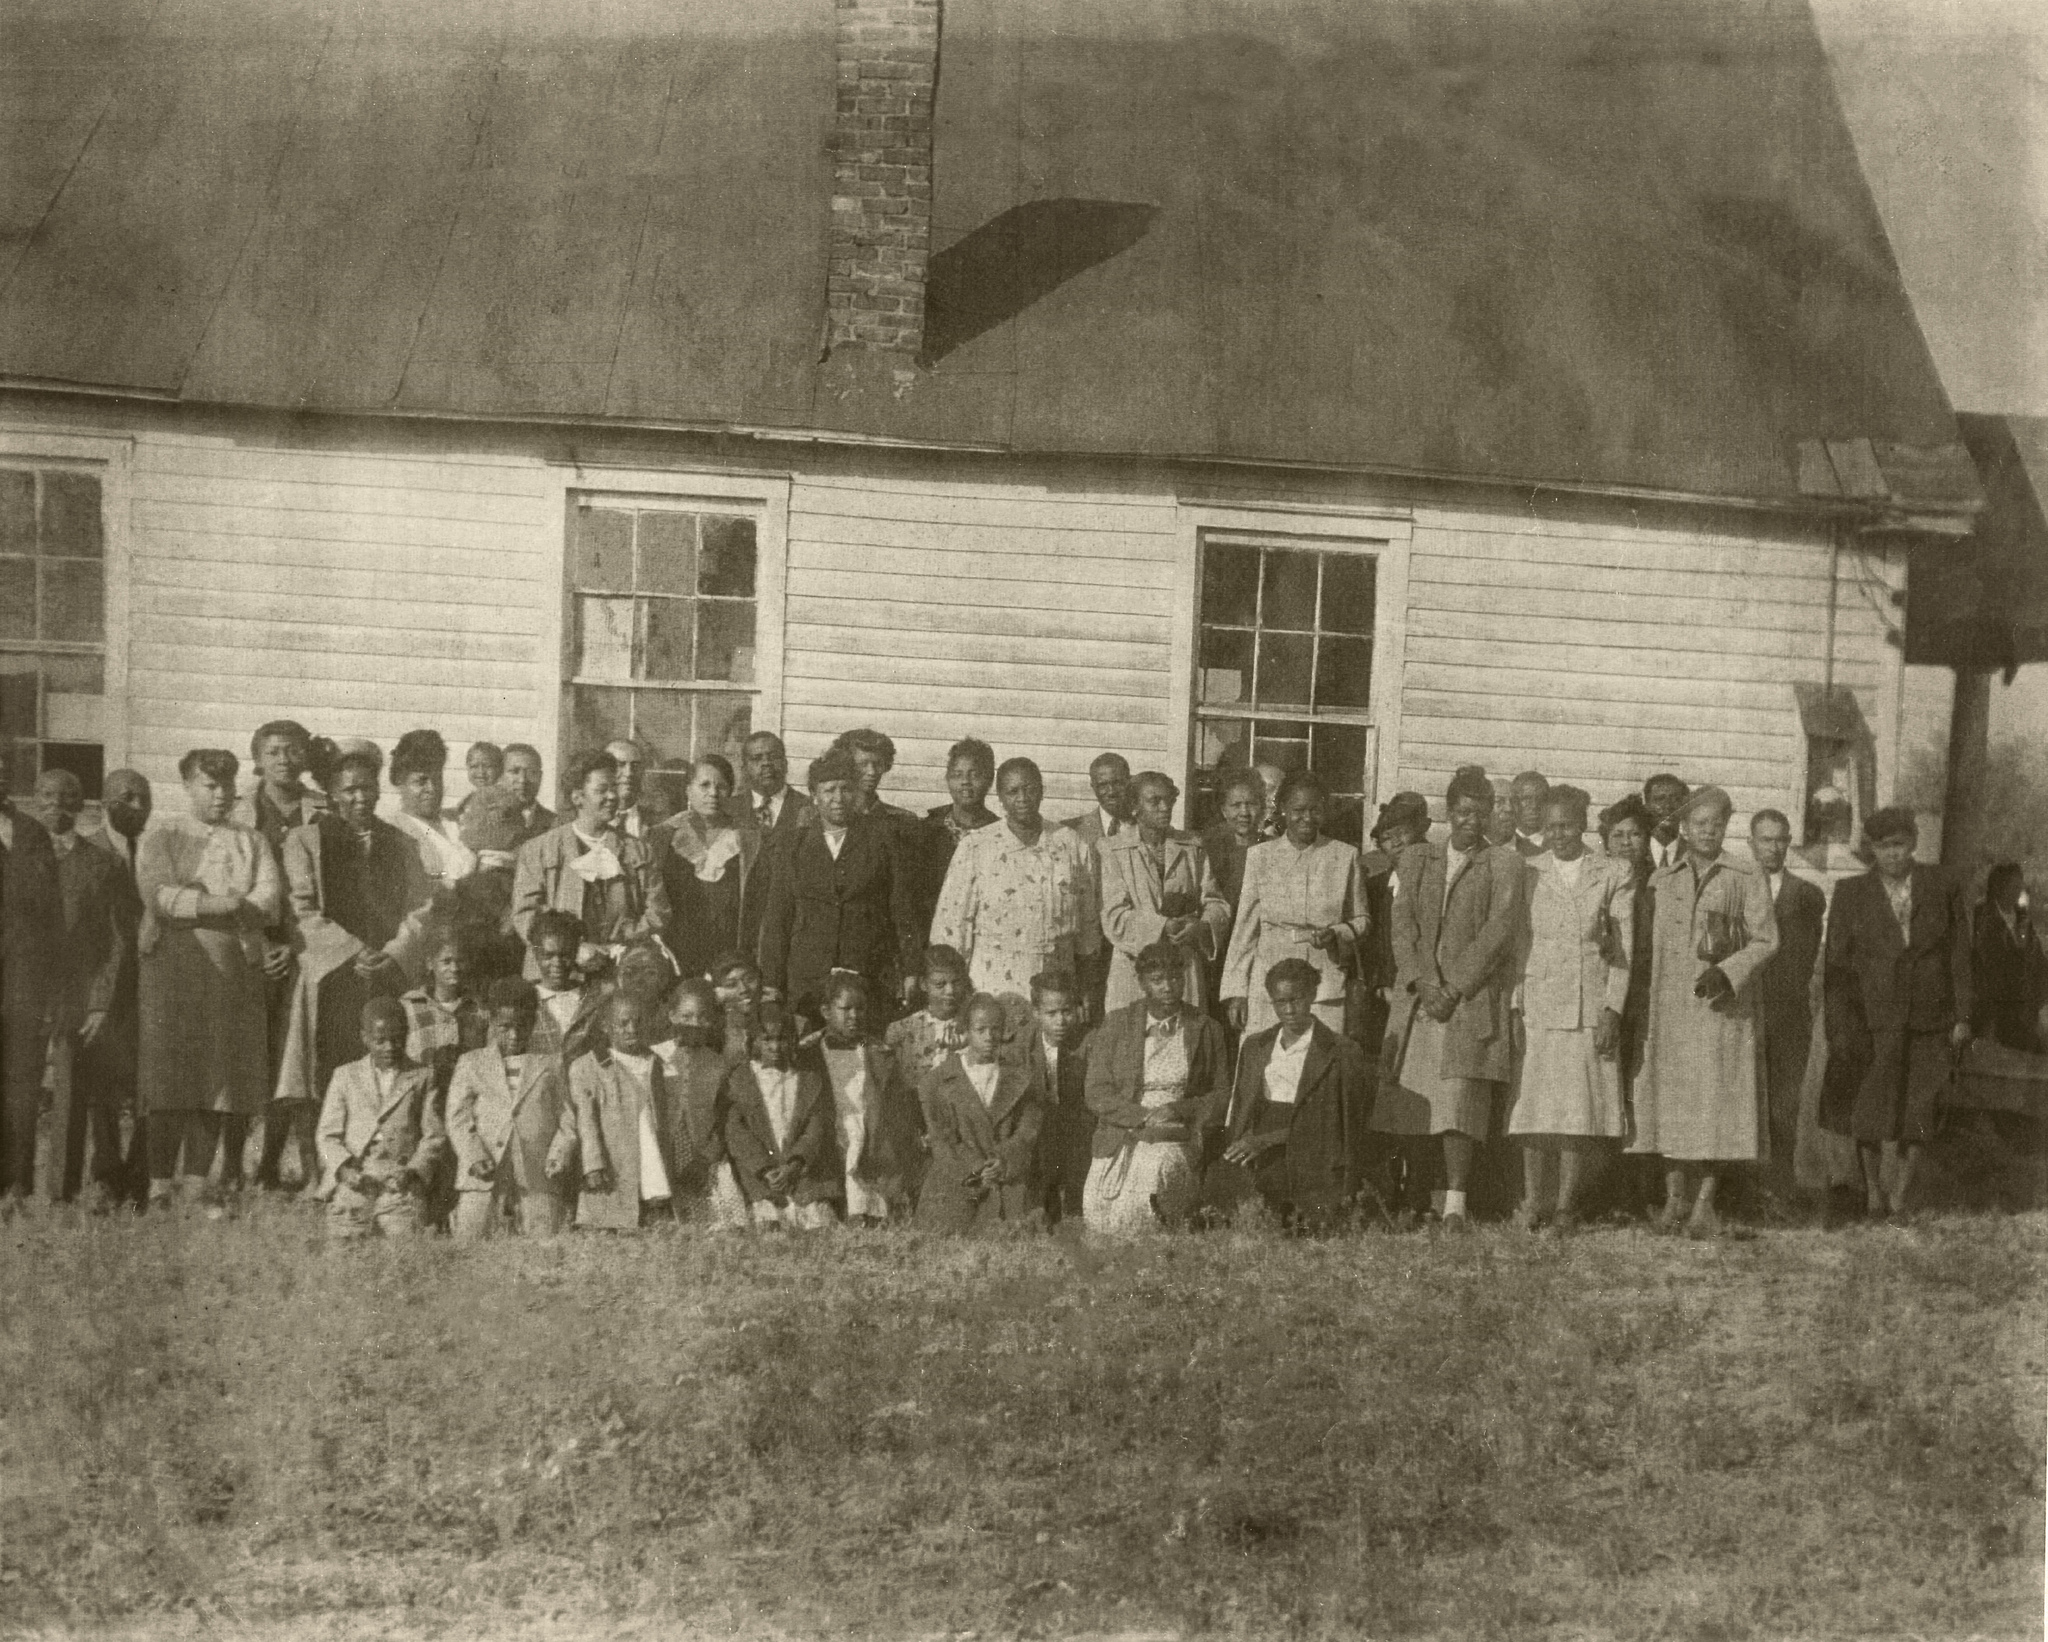 Circa 1930 - Hopewell residents standing outside 1st Baptist Church of Hopewell. Although many of the Hopewell families represented in this picture have moved out of the 'old neighborhood,' there are still children and grandchildren of some of the original Hopewell families living in the neighborhood. It is those children, now elderly, that we are privileged to serve.